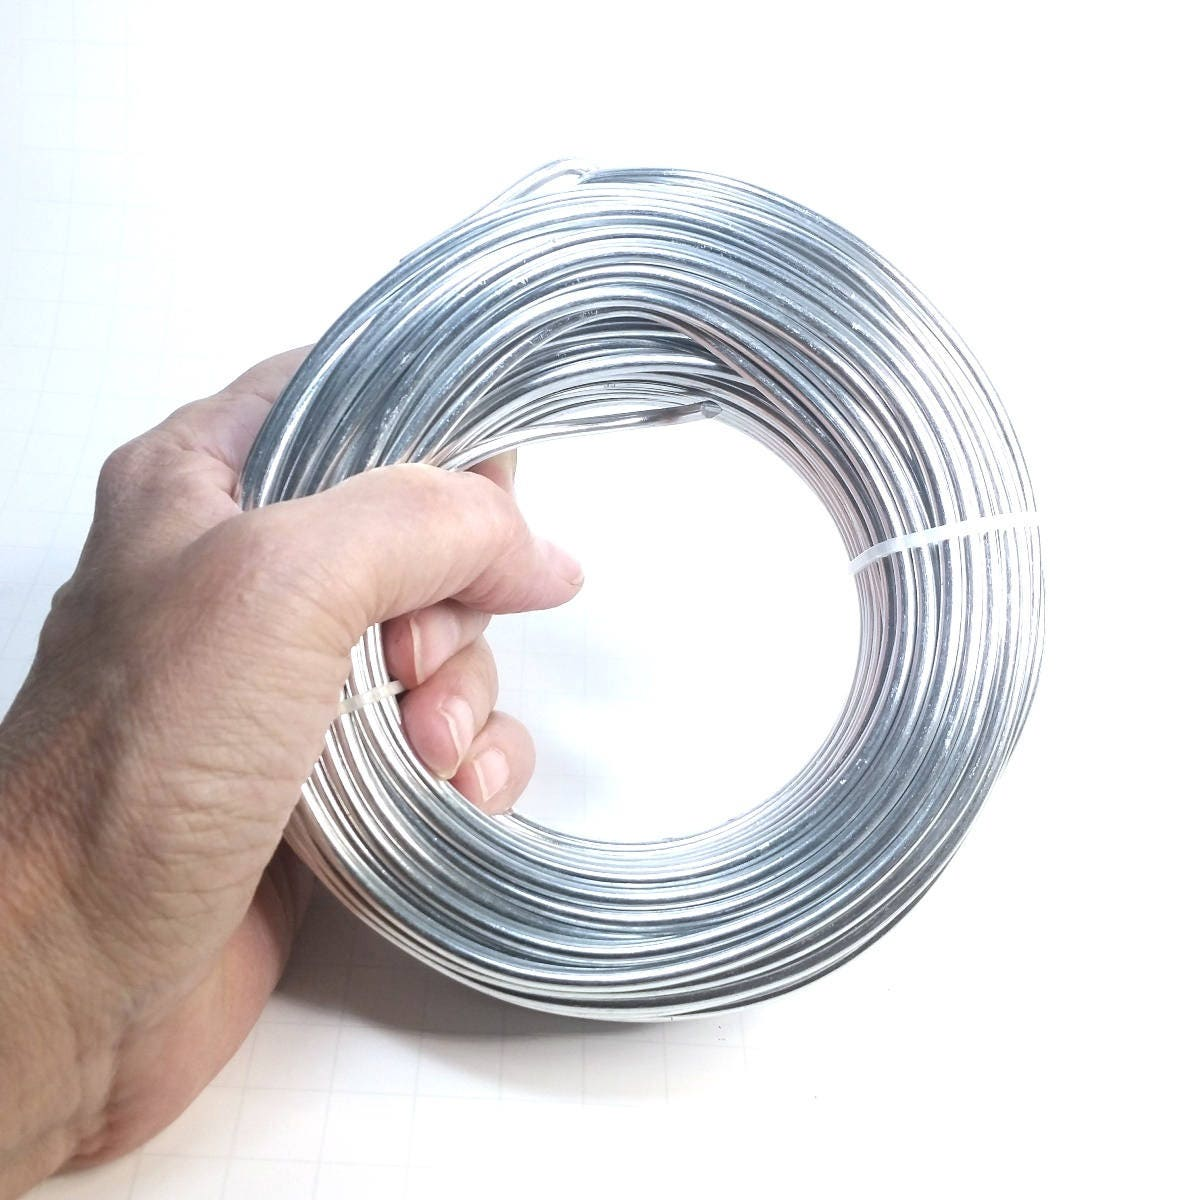 Bulk aluminum wire round silver color 500 grams choose sizes from bulk aluminum wire round silver color 500 grams choose sizes from 8 thickness 06mm to 60mm approx 23 gauge up to 3 gauge greentooth Images